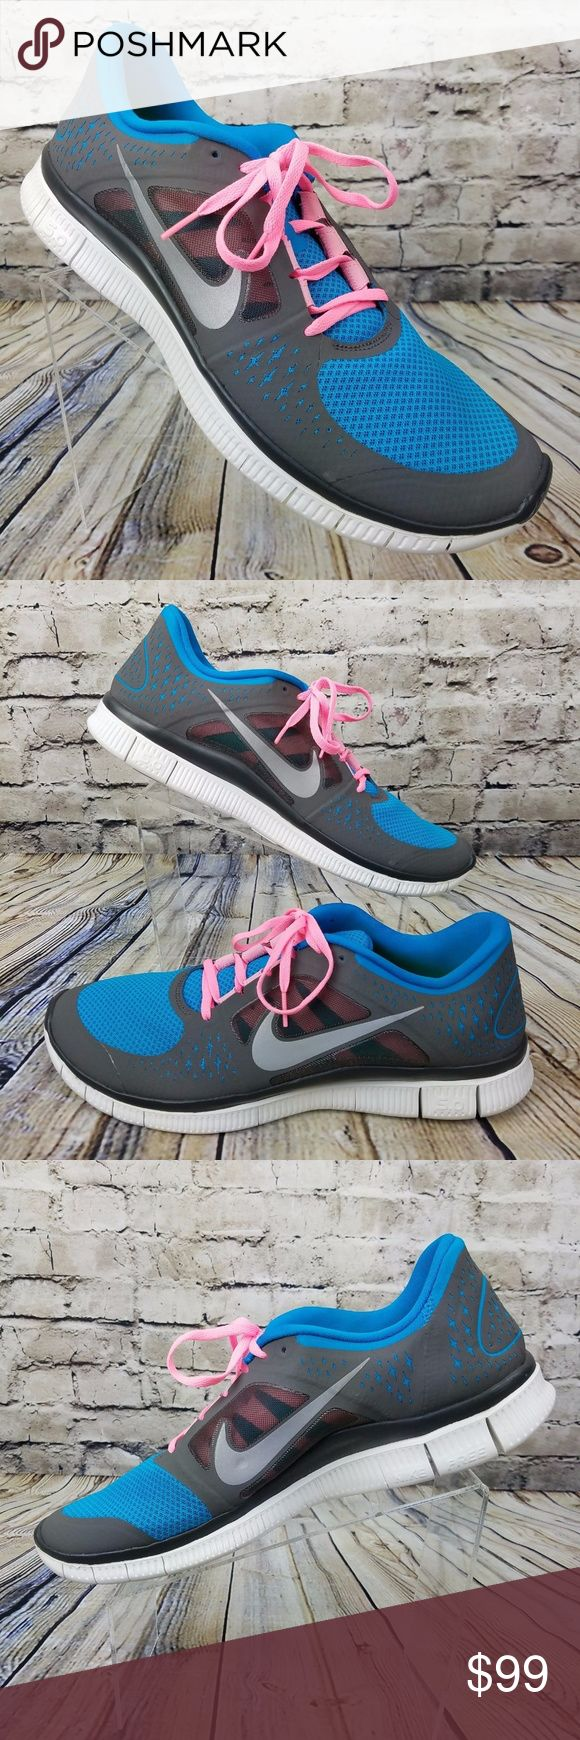 NIKE Free Run 5.0 Running Shoes Men's Size 15 NWOT Men's NIKE Run Free Running Shoes  NEW w/o Tags - Does Not Include Original Box  Style Name: RUN FREE 5.0  Size: 15 USA 14 UK - Medium Width  Color = Gray Blue & Pink Nike Shoes Athletic Shoes #runningshoes